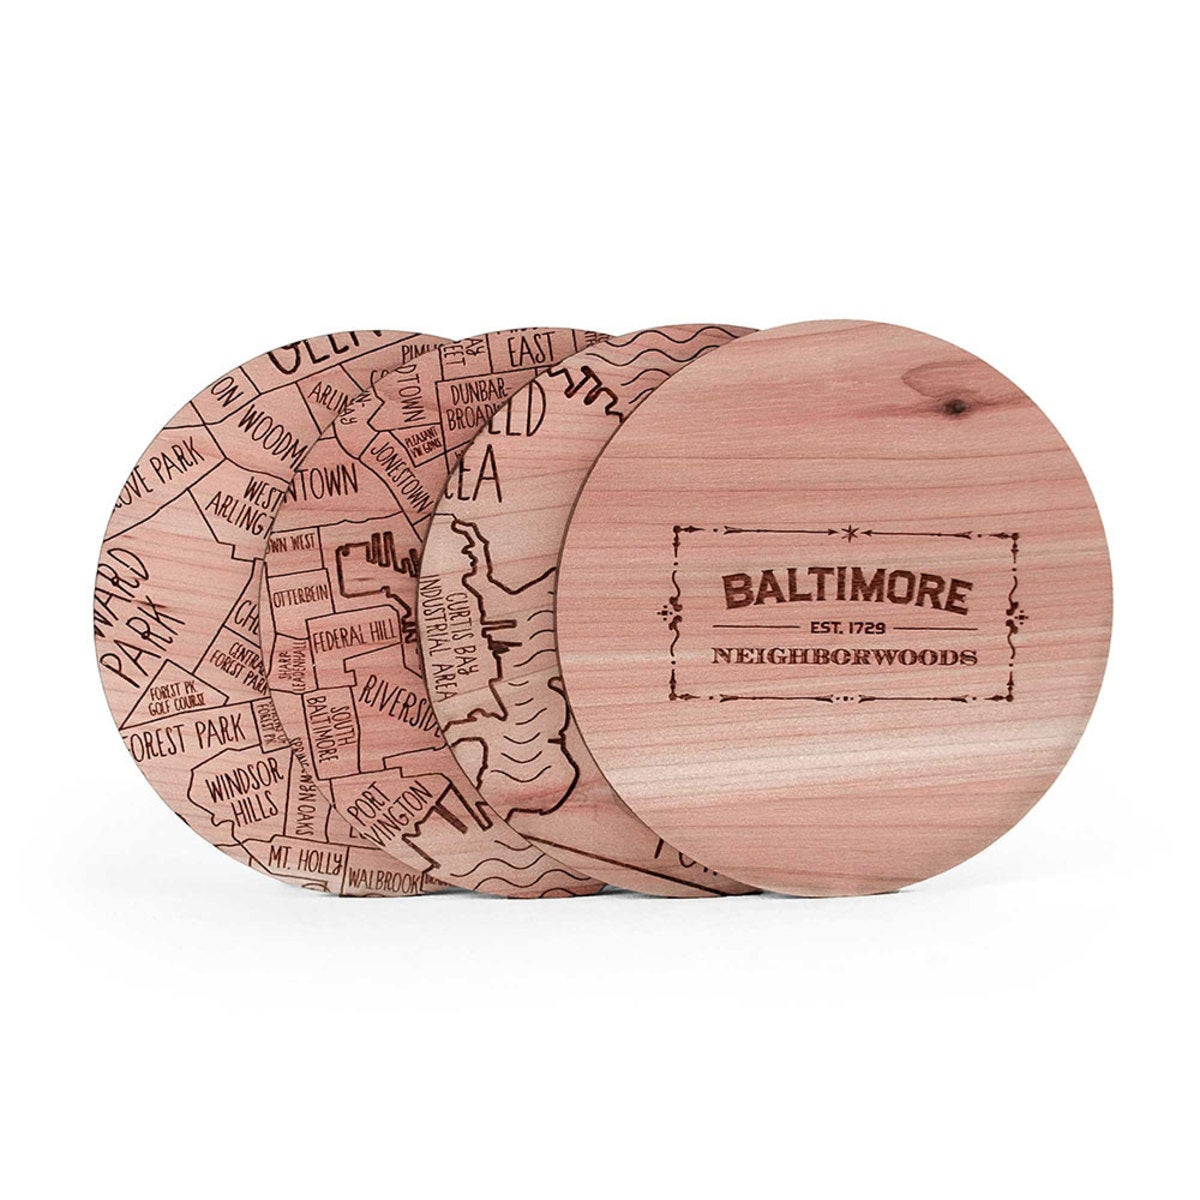 City Cedar Coasters, Set of 4 - Baltimore